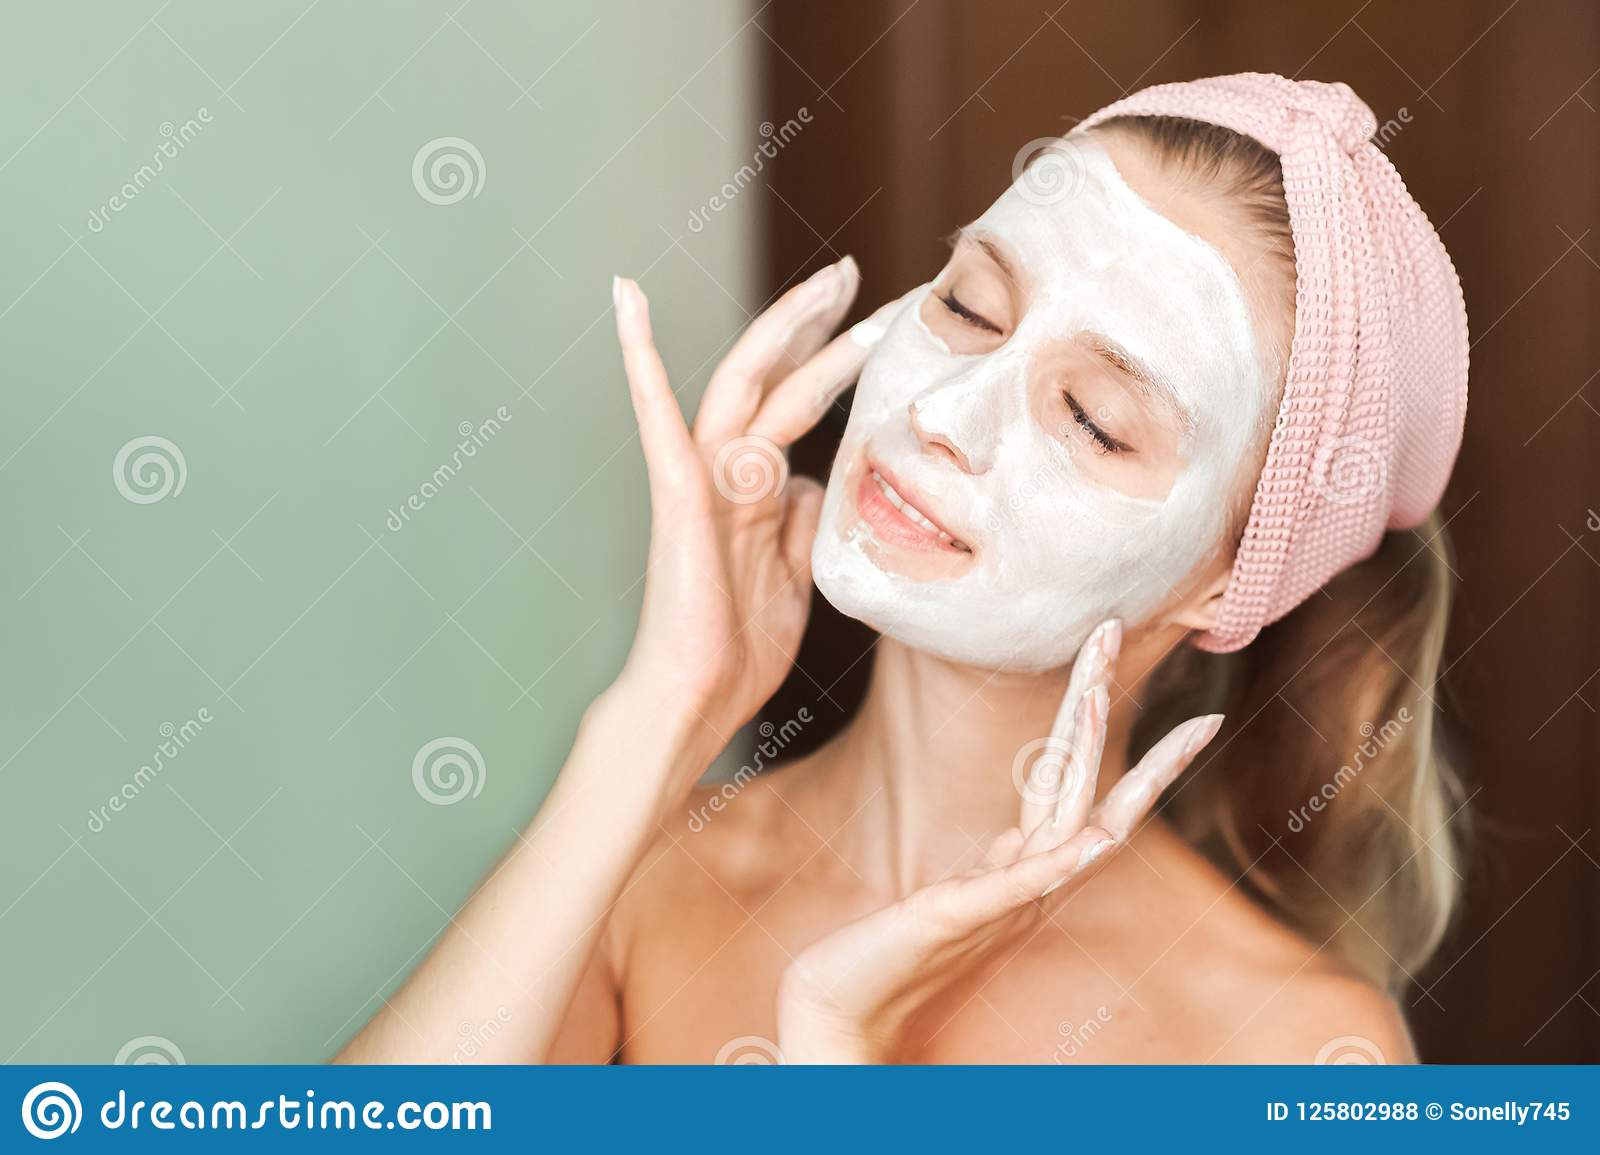 Beauty Treatments. Young woman is applying a mask, cream on her face close-up. Facial skin care portrait of a beautiful girl with